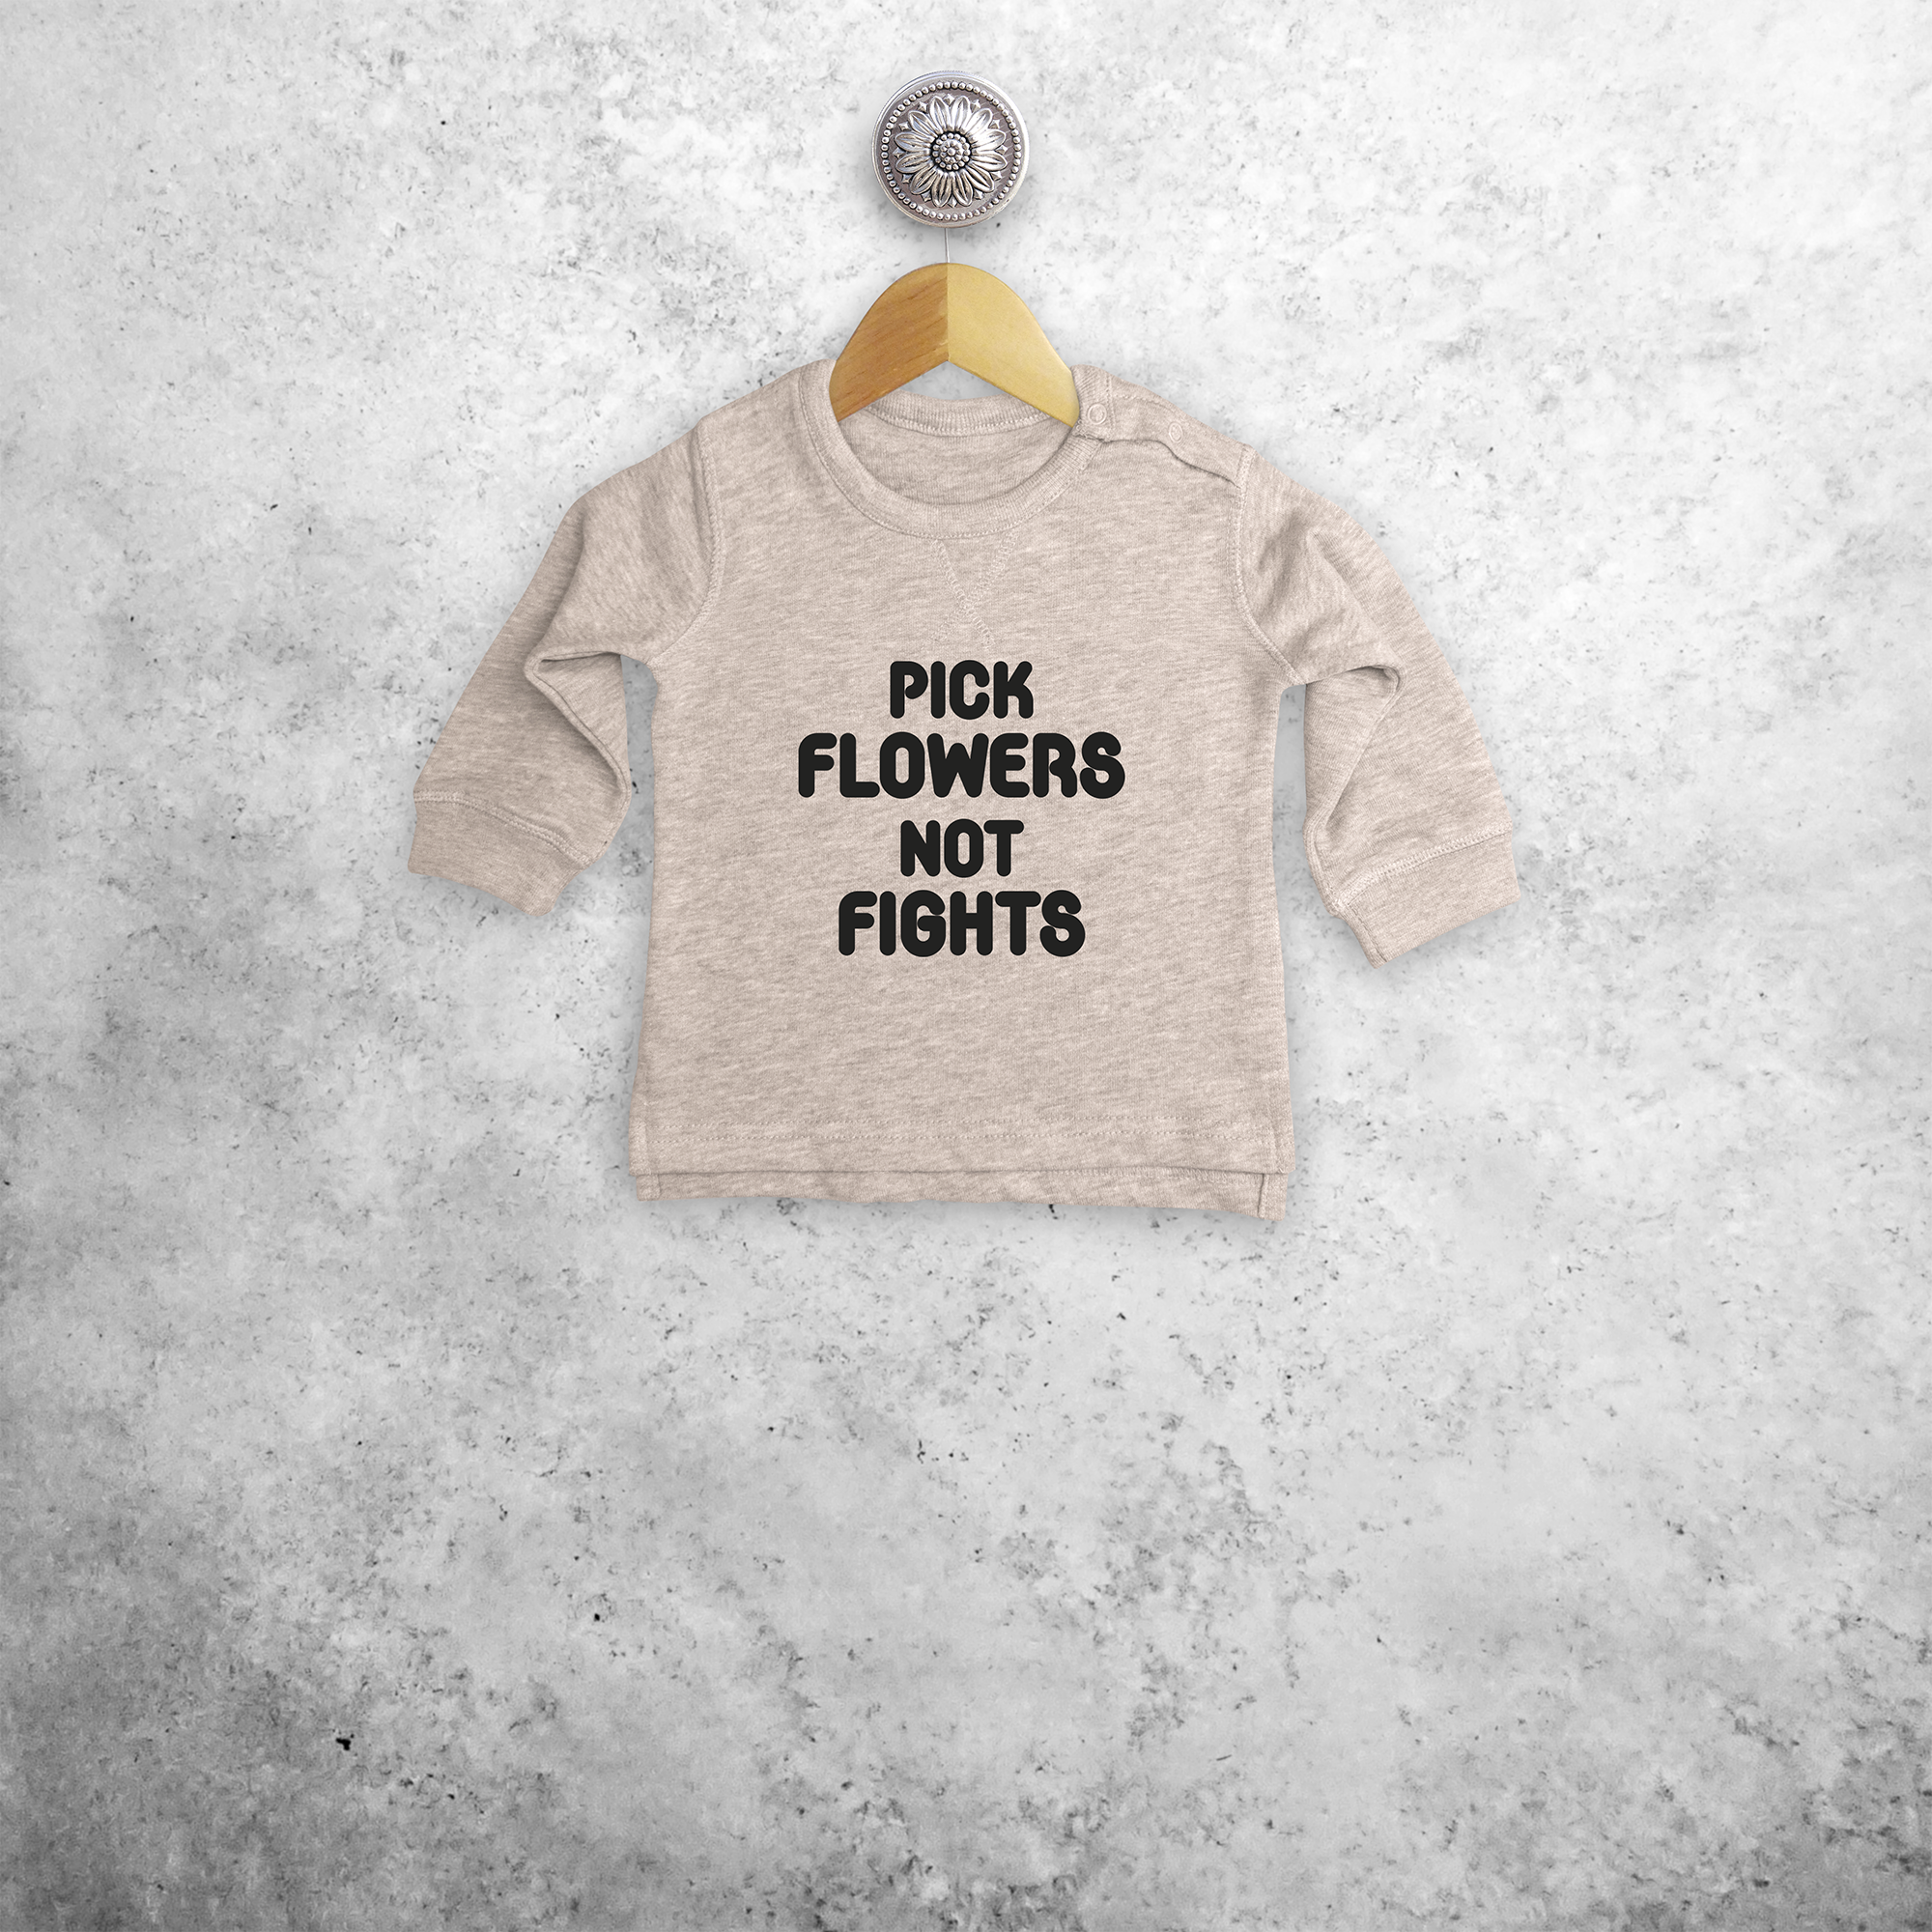 'Pick flowers not fights' baby sweater